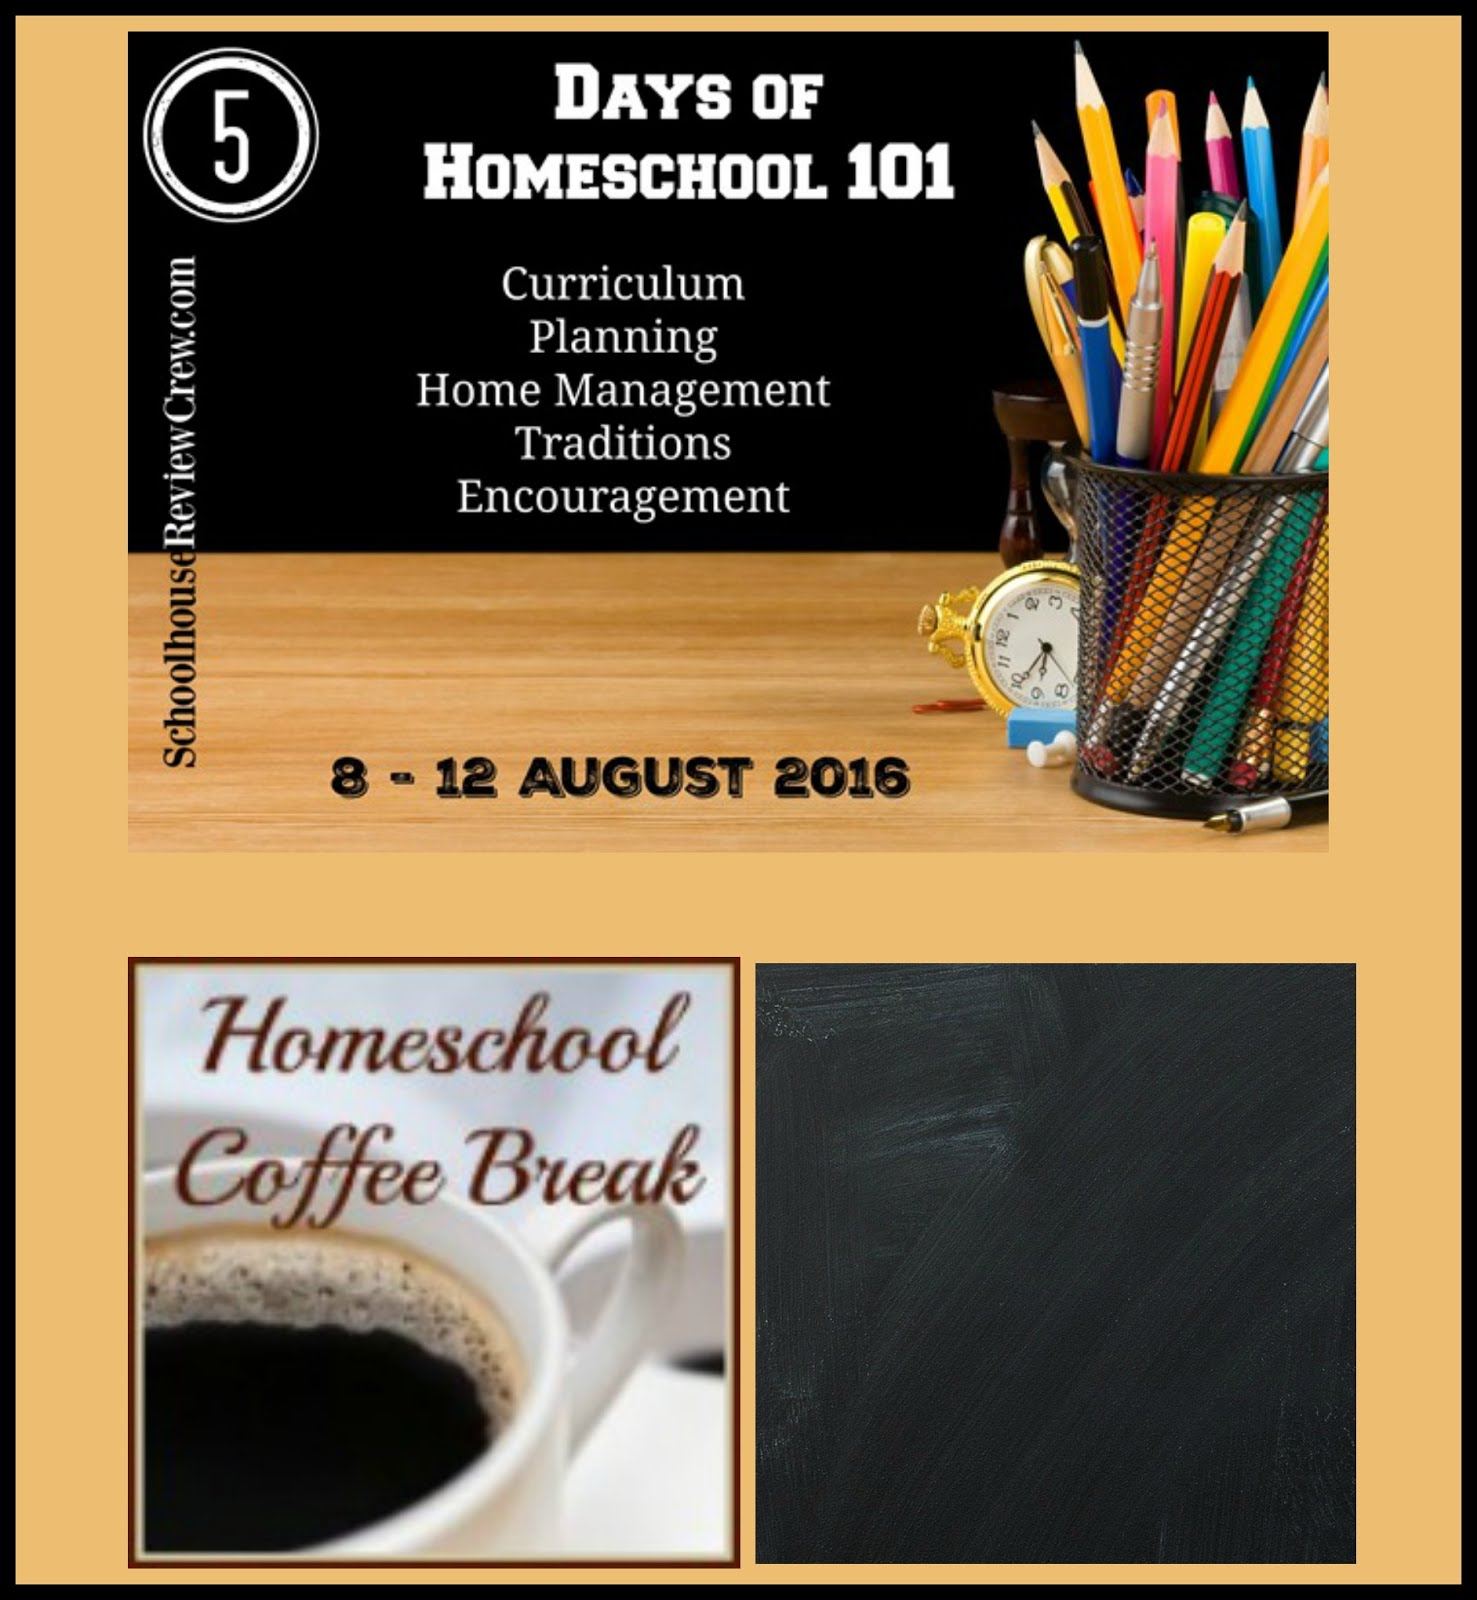 5 Days of Homeschool 101 (2016 Blog Hop)